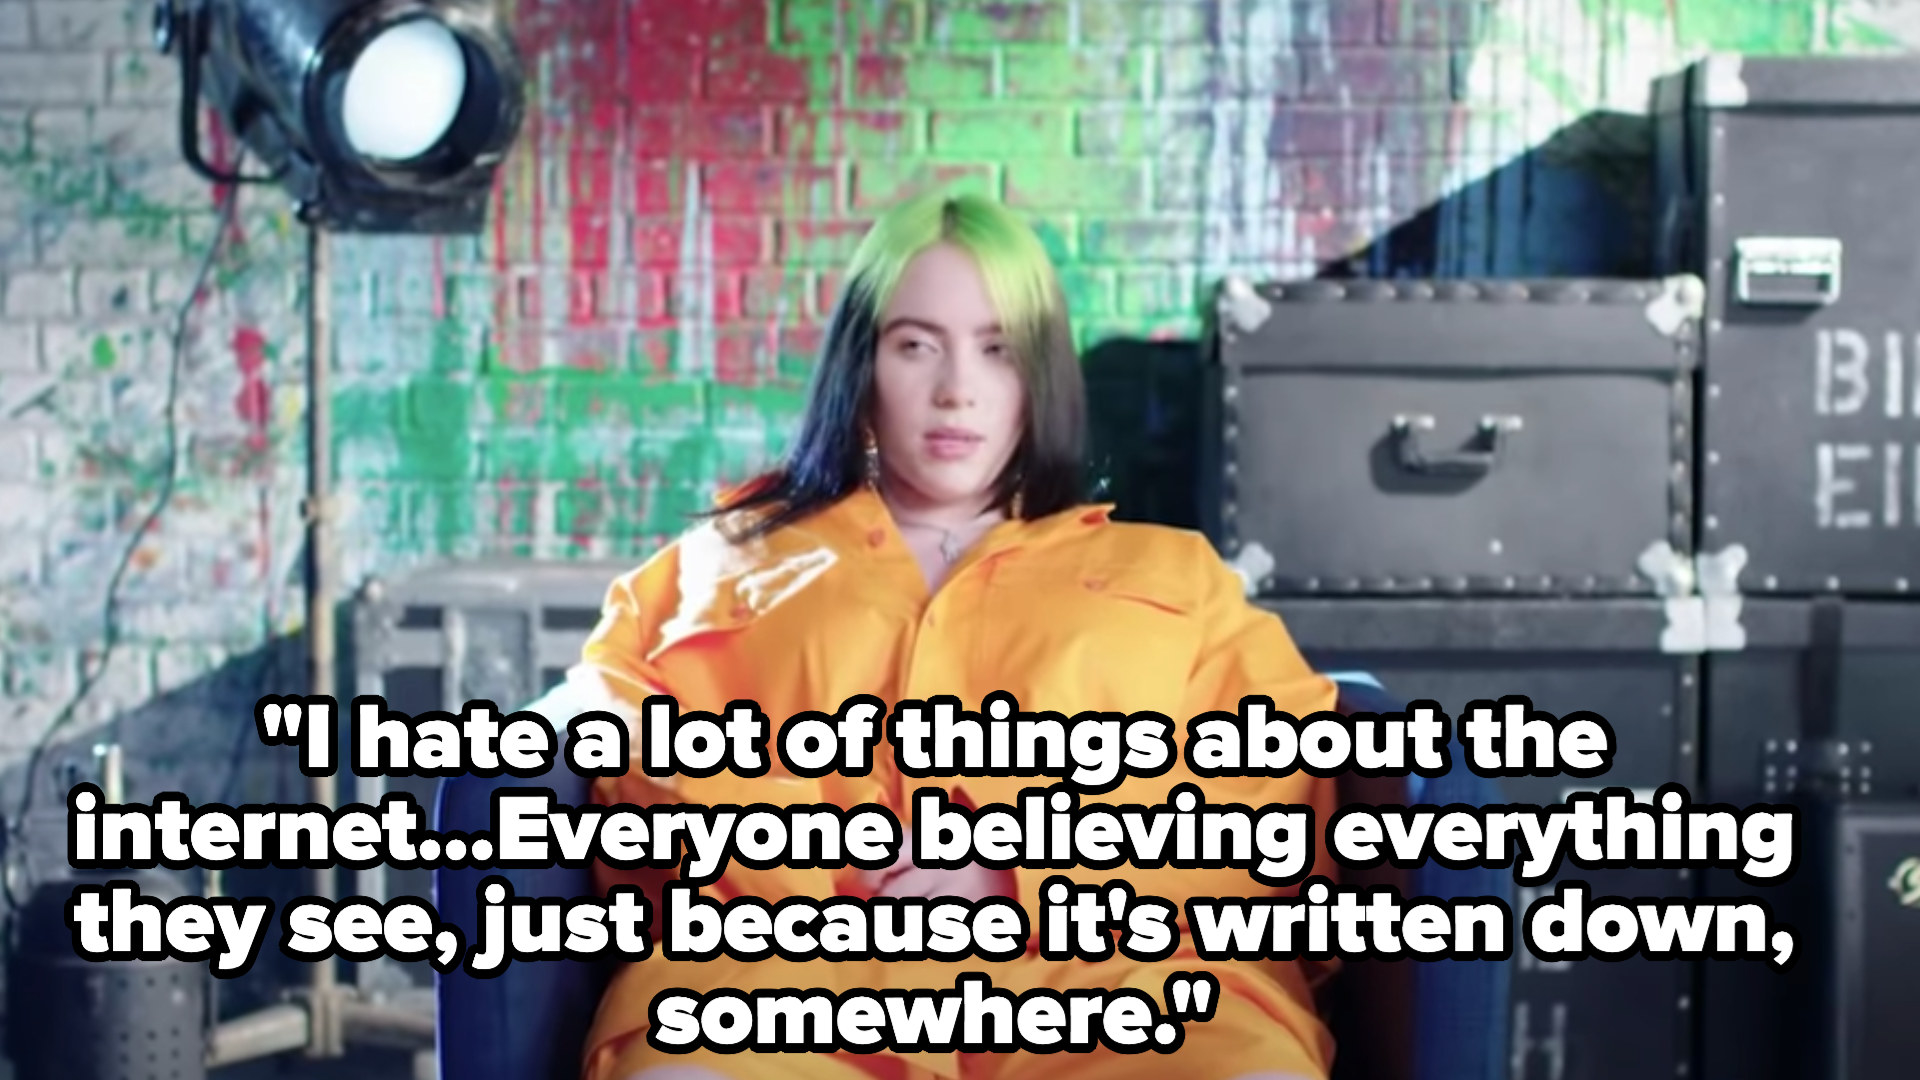 """I hate a lot of things about the internet...Everyone believing everything they see, just because it's written down somewhere"""